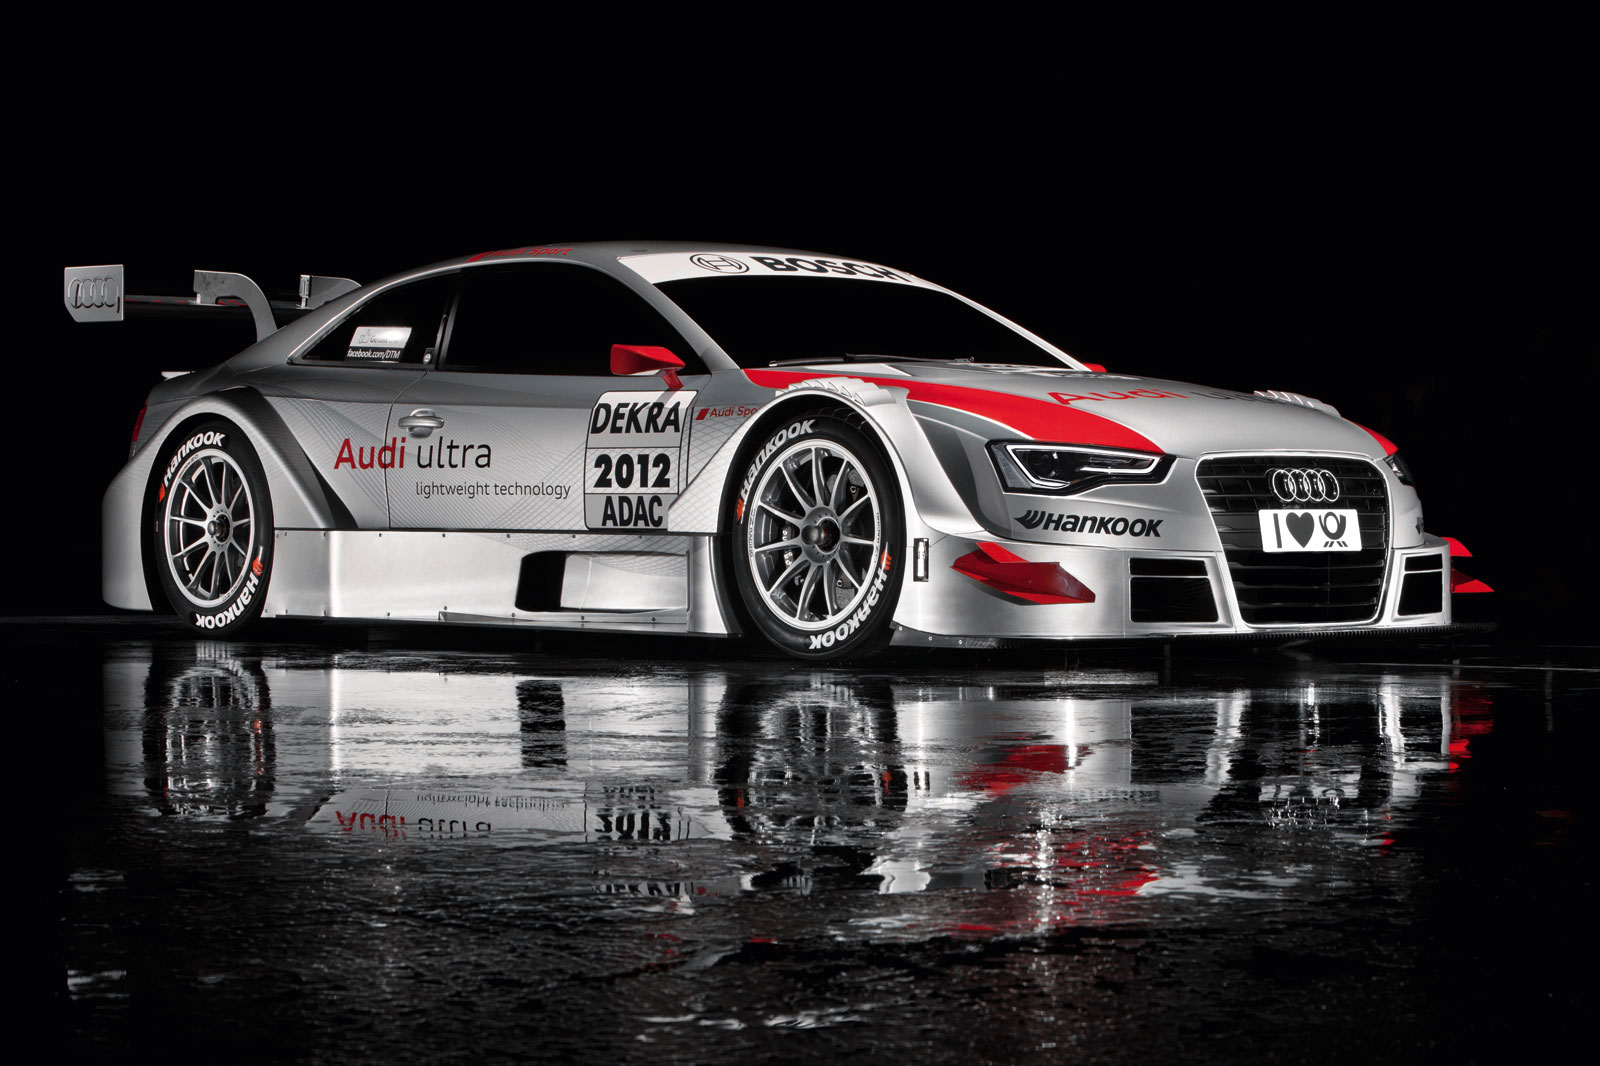 Sport Cars Audi A5 Dtm Race Car Hd Wallpapers 2012